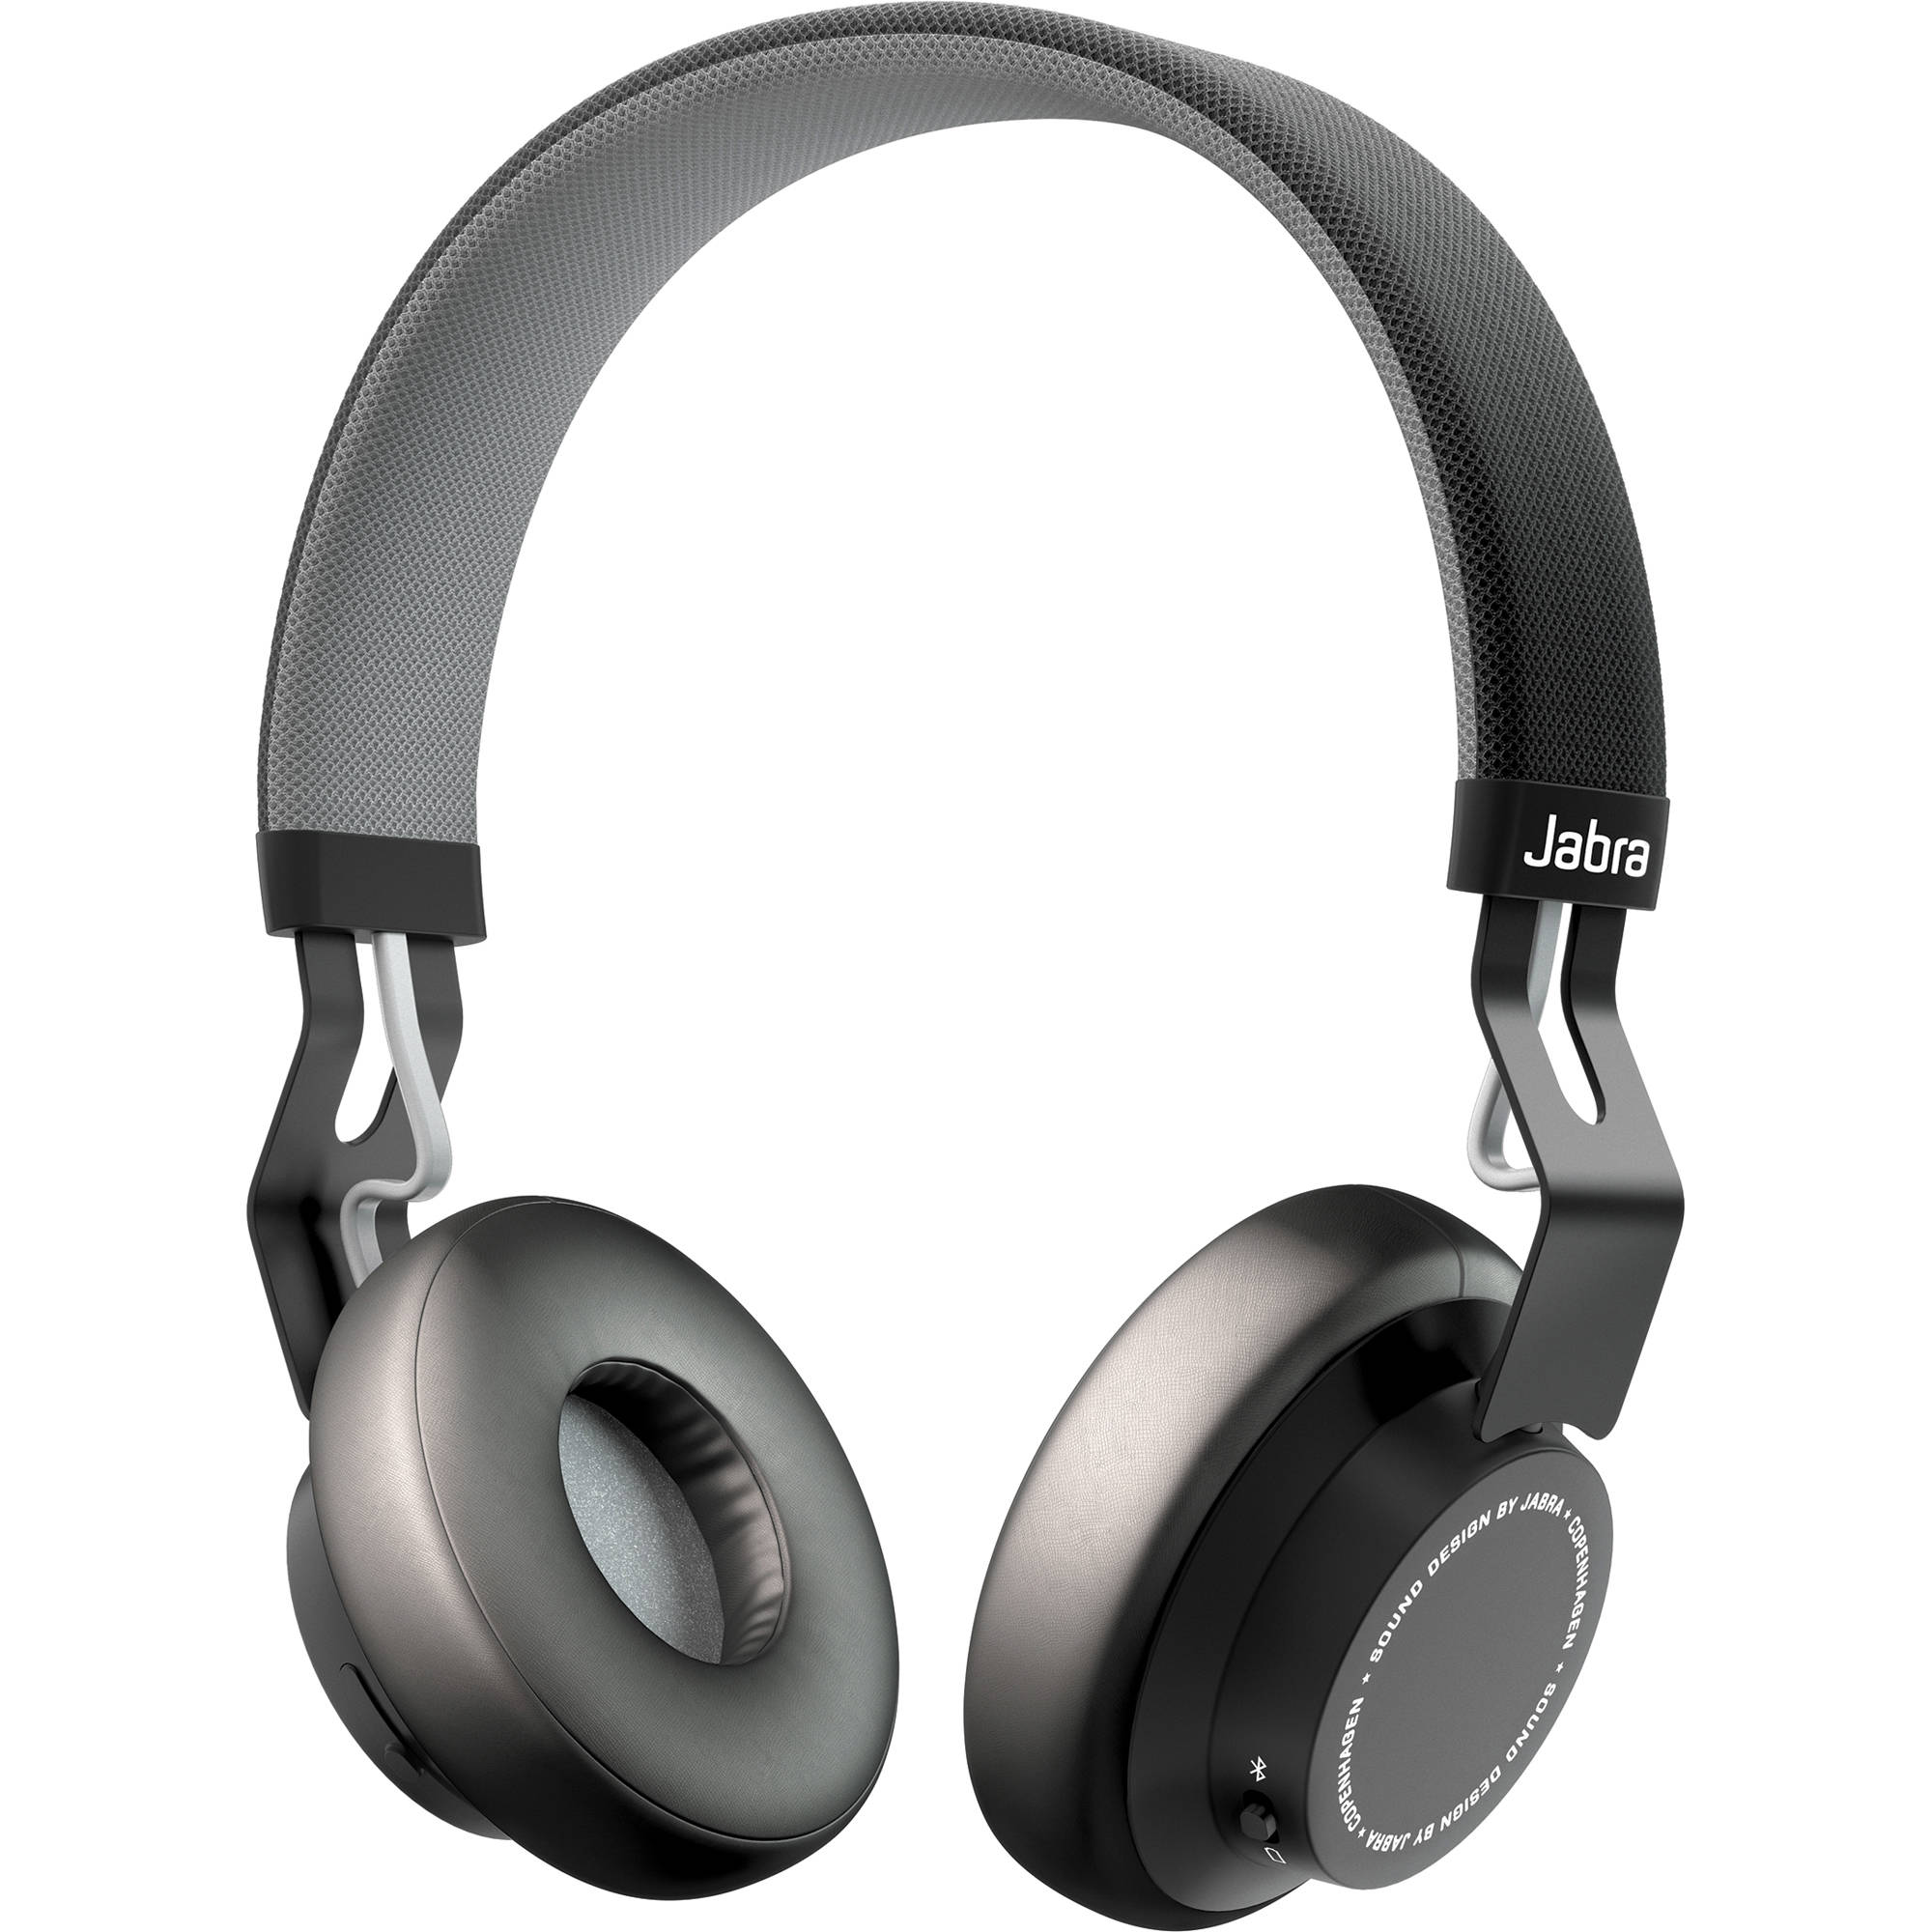 Image for Jabra Move Wireless Bluetooth Headphones - Black from Circuit City